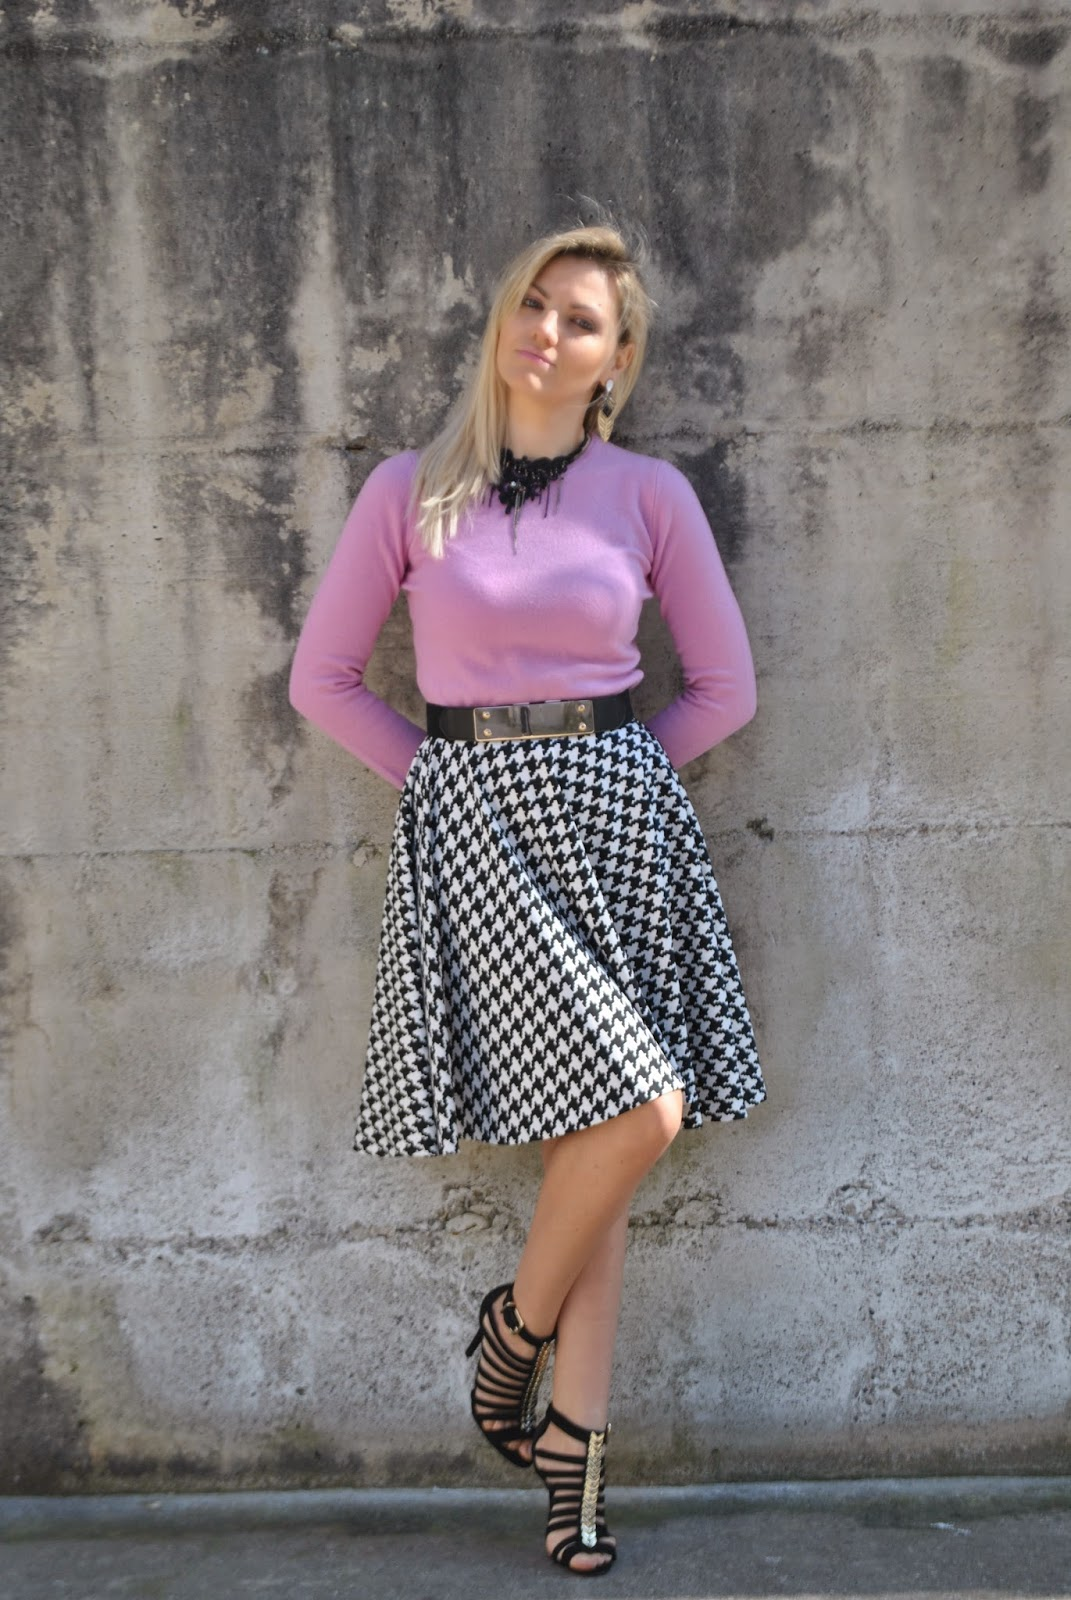 outfit gonna a ruota outfit pied-de-poule outfit gonna pied-de-poule outfit maglione cachemire lilla outfit gonna e maglione orecchini majique sandali schutz mariafelicia magno color-block by felym blog di moda blogger italiane di moda mariafelicia magno fashion blogger colorblock by felym come abbinare il colore lilla come abbinare la stampa pied-de-poule outfit invernali donna outfit marzo 2015 how to wear round skirt how to wear sweater and skirt abbinamenti gonna a ruota schutz sandals girl blonde girls blonde hair fashion bloggers italy italian girls blonde girls cachemire sweaters winter outfits  elegant winter outfits outfit invernali gonna eleganti